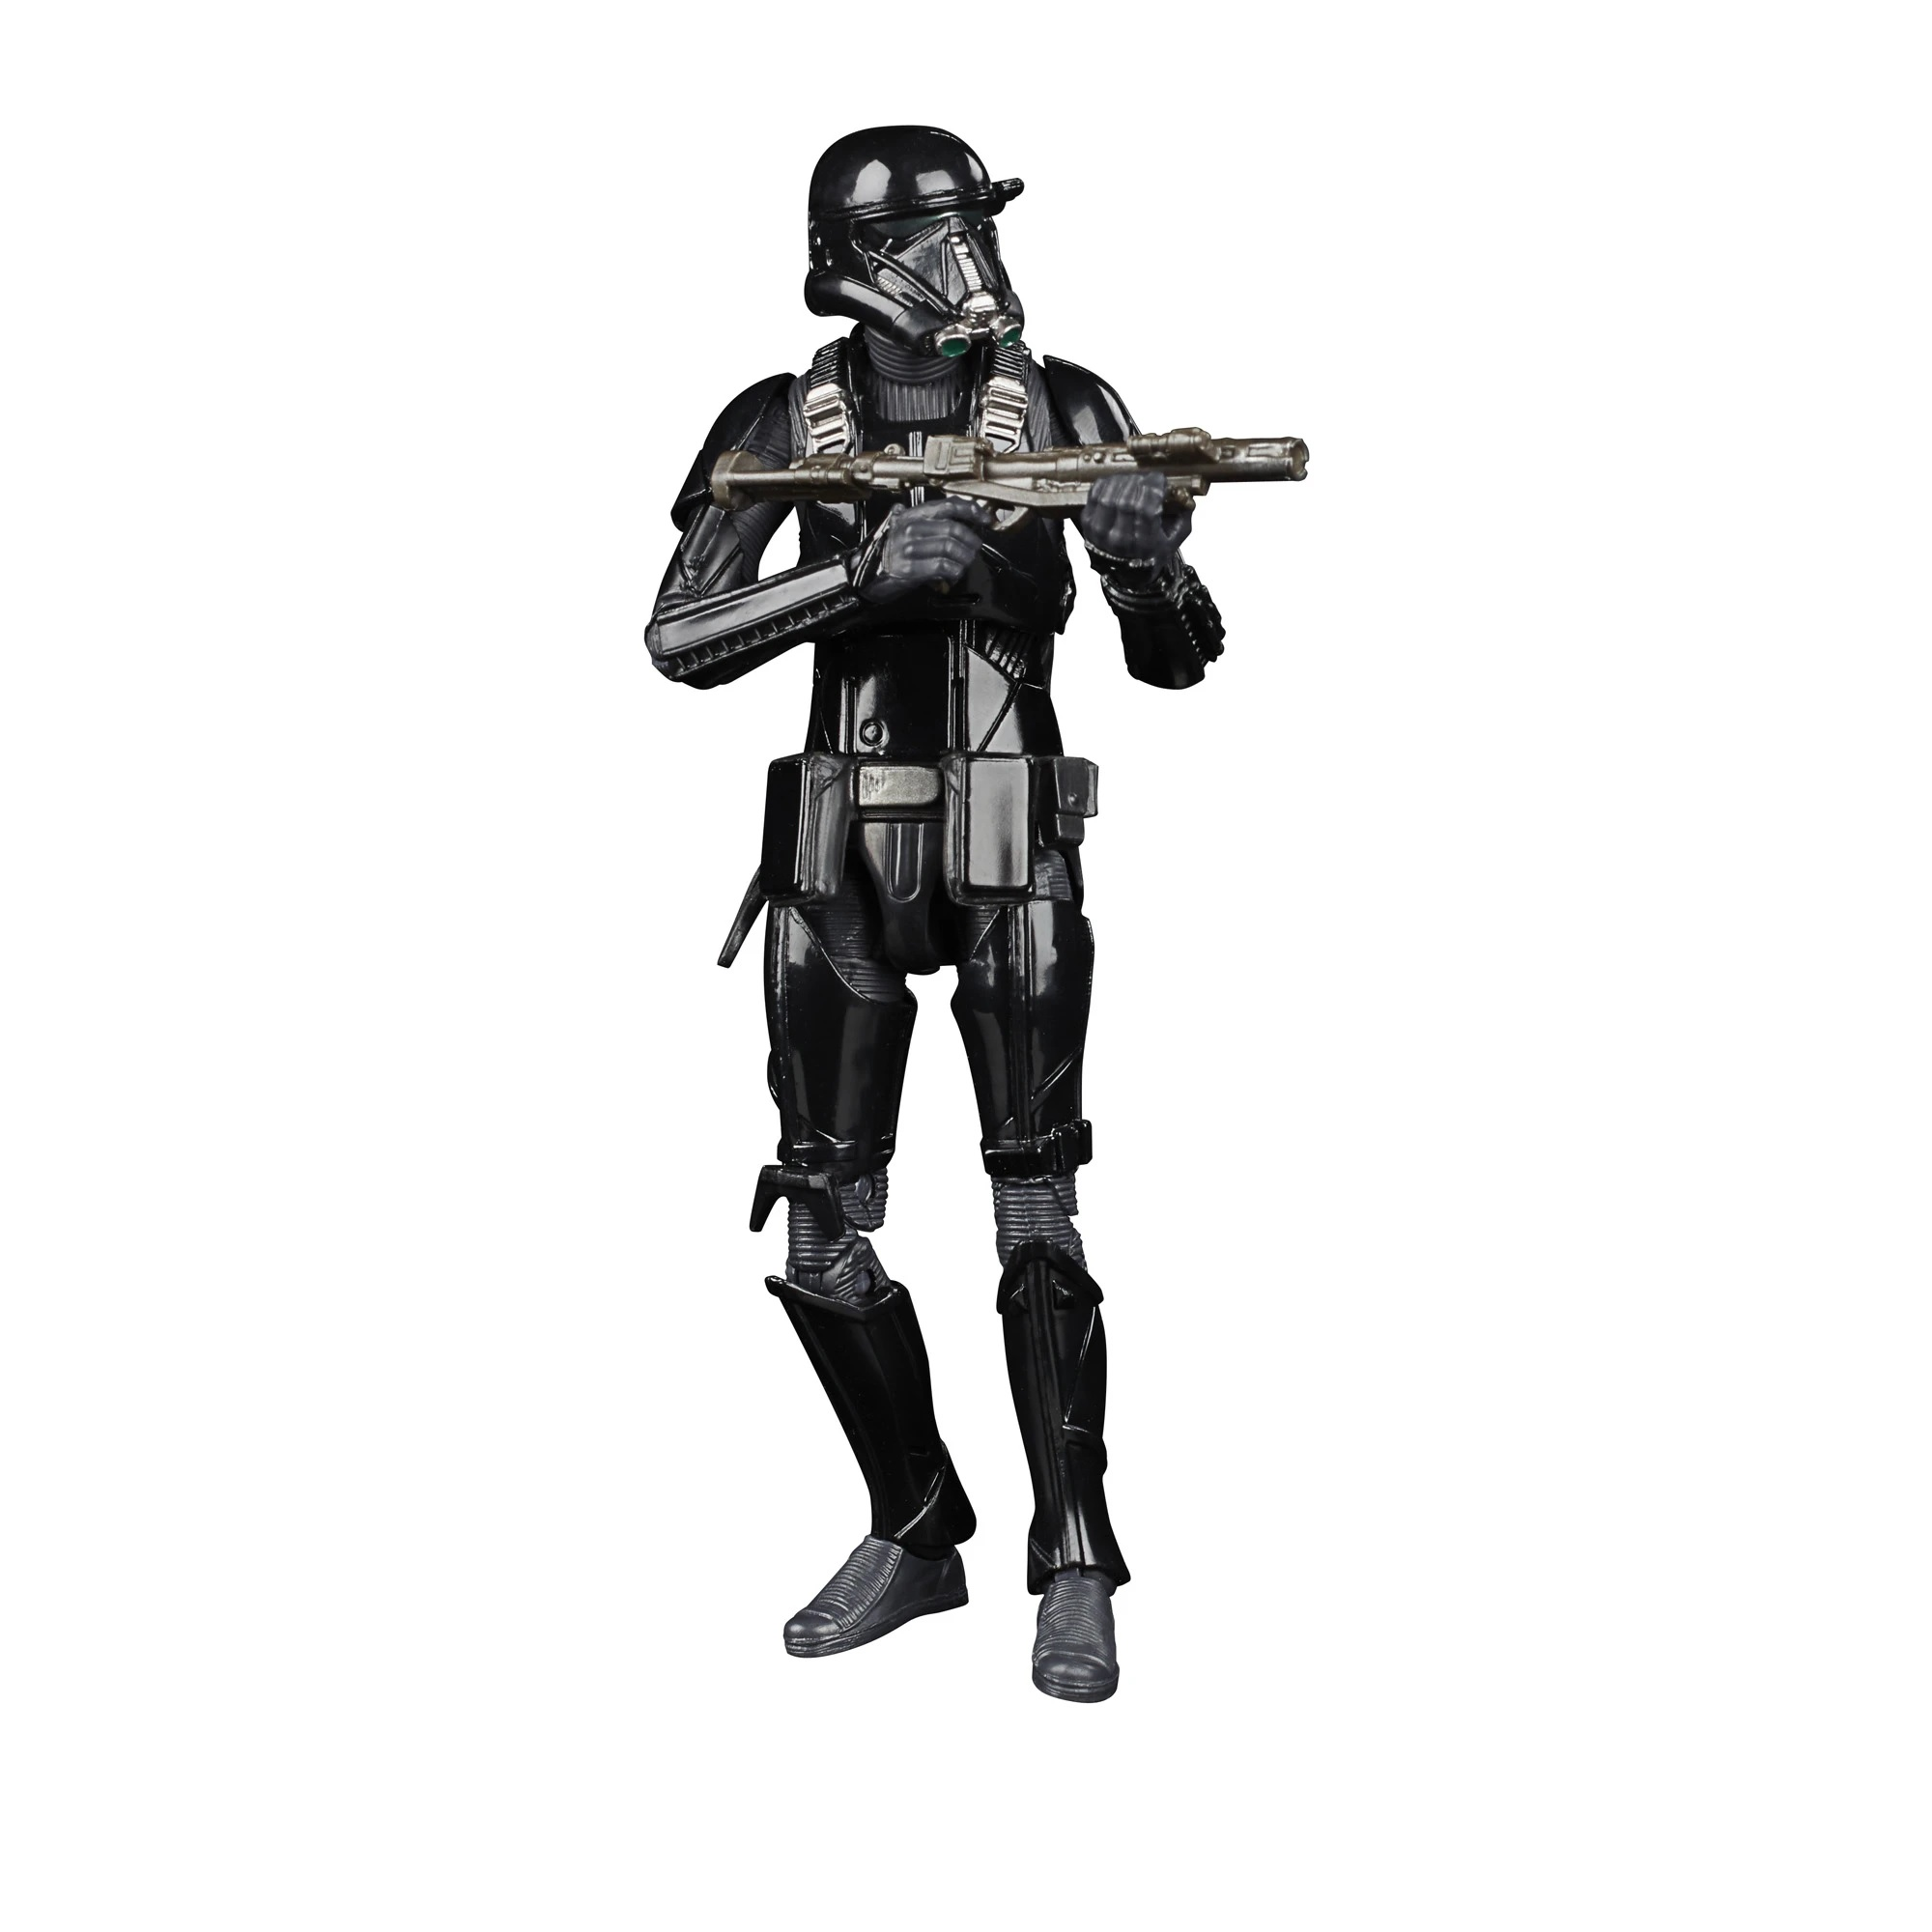 Imperial Death Trooper 1